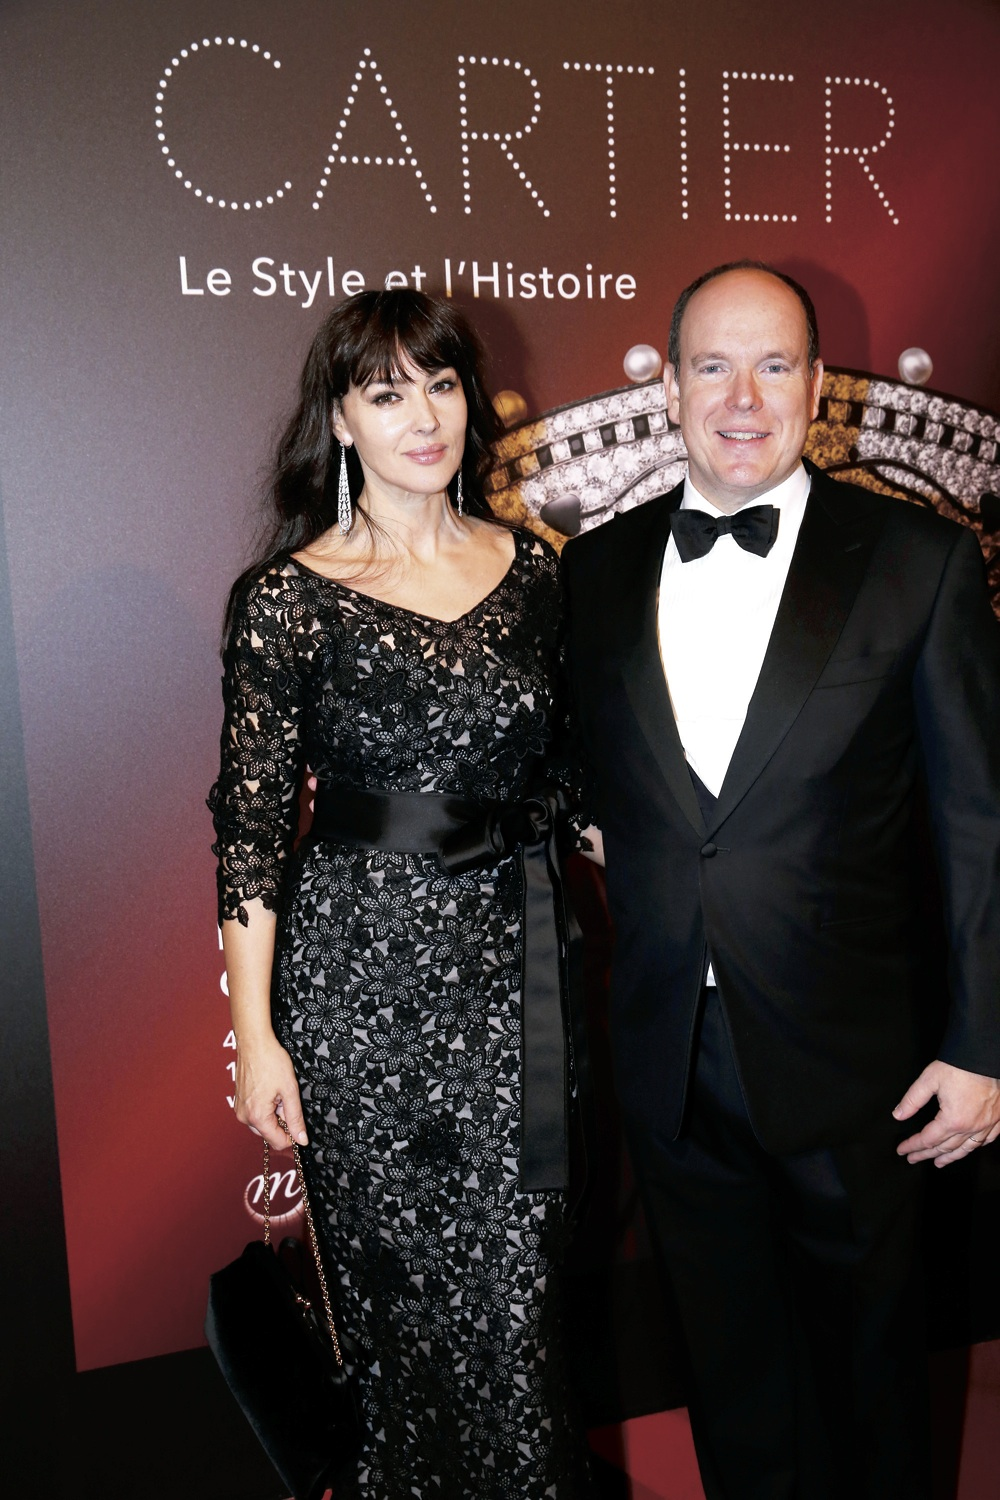 Monica Bellucci and Prince Albert in Cartier.